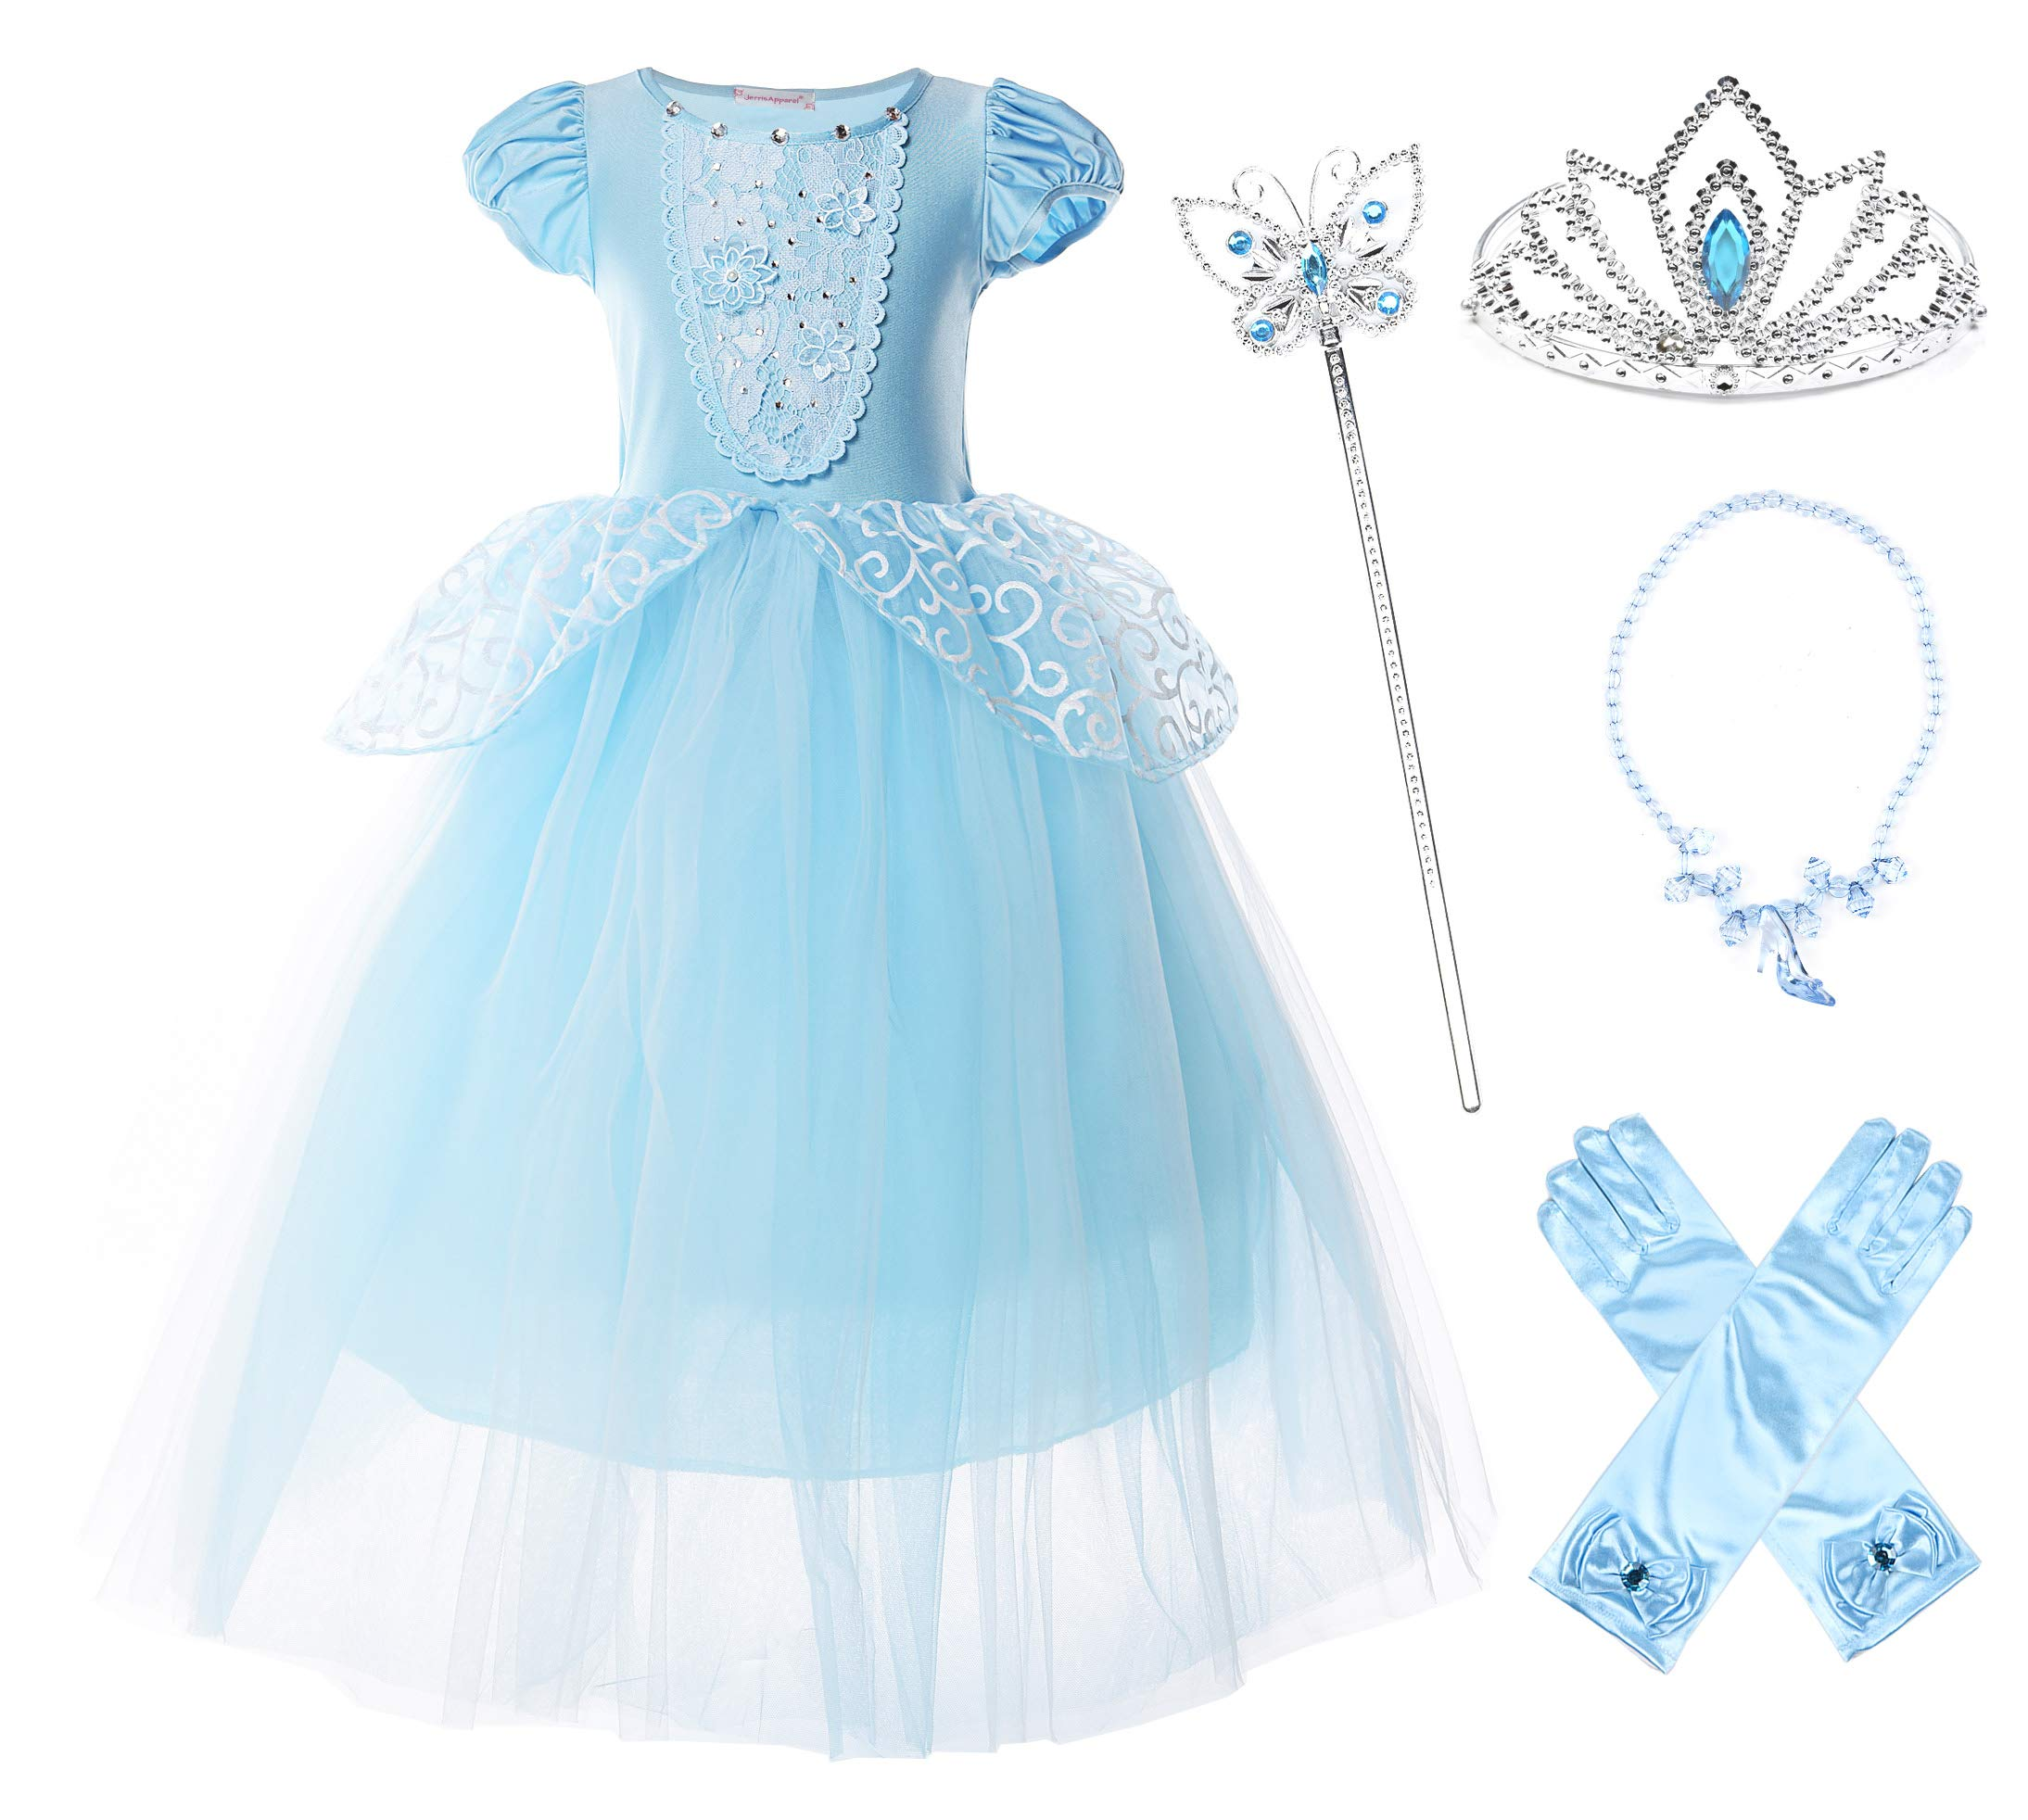 JerrisApparel Girls Cinderella Princess Costume Puff Sleeve Fancy Party Dress up (4T, Blue with Accessories)